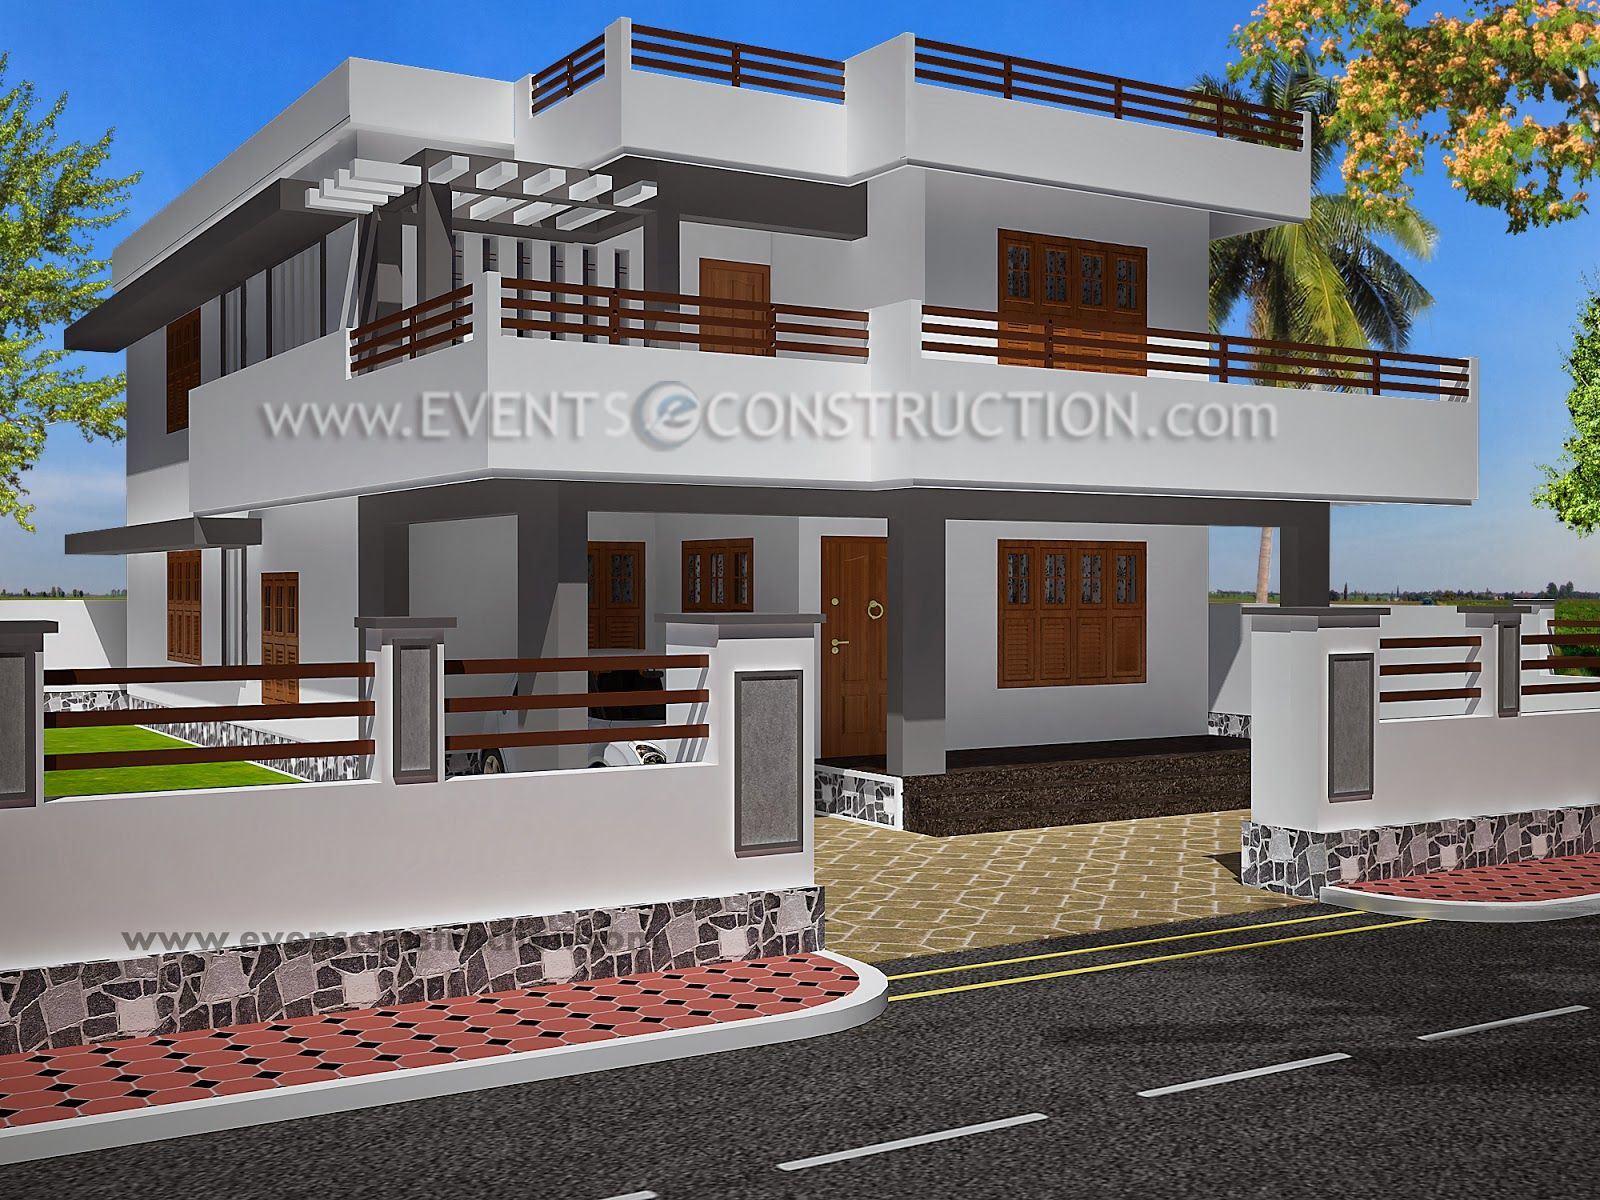 Exterior Boundary Wall Designs Google Search House Wall Design Boundary Walls House Front